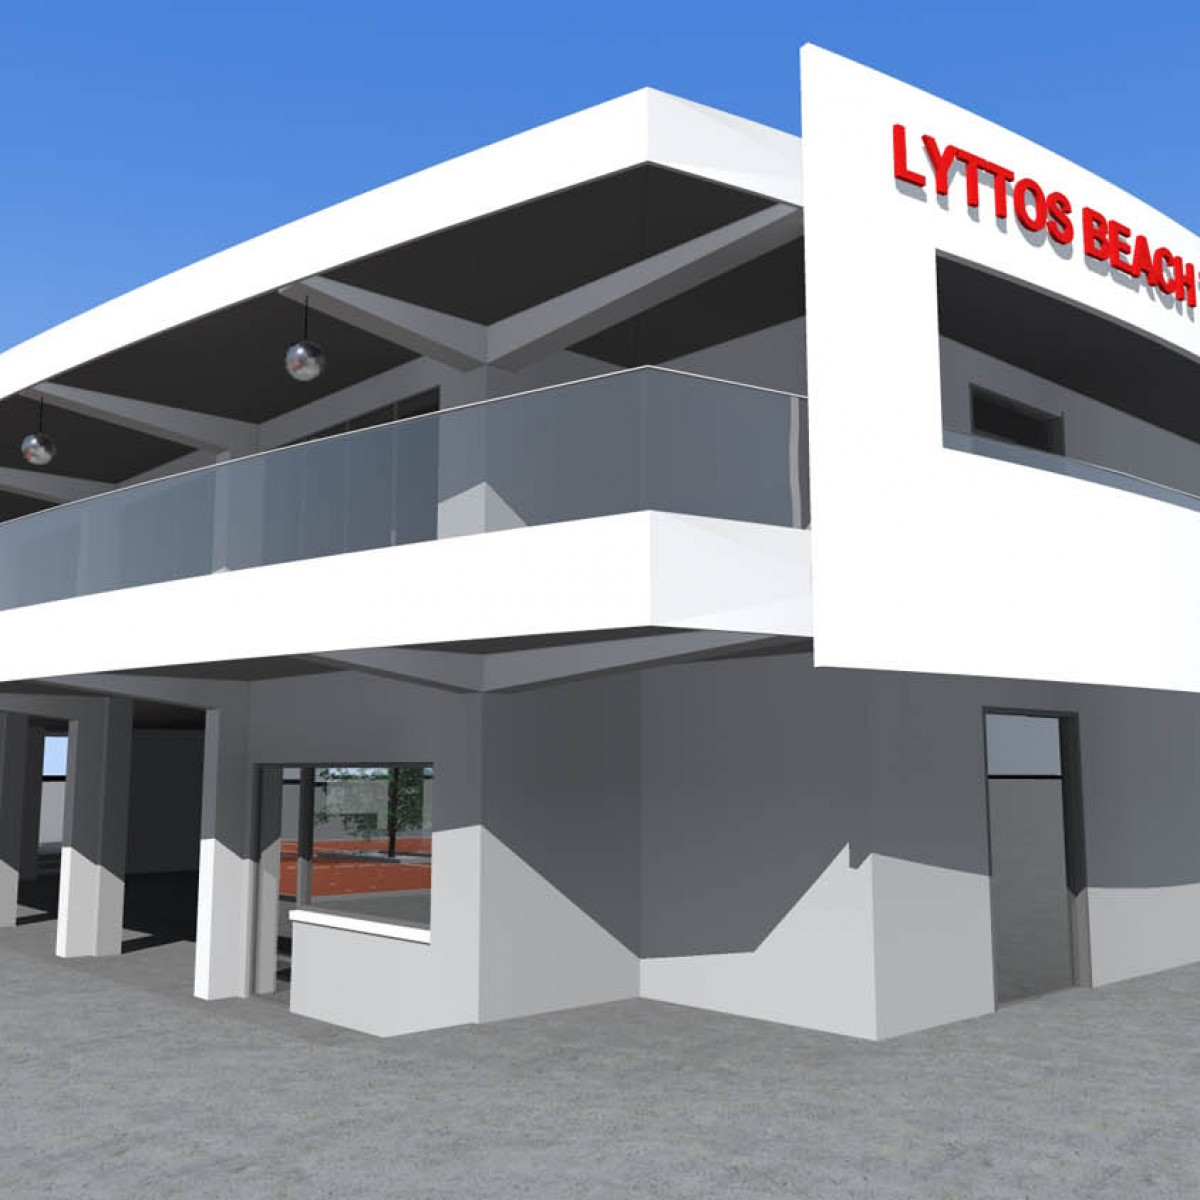 NEW TWO-FLOOR BUILDING WITH BASEMENT (TENNIS ACADEMY) IN LYTTOS BEACH HOTEL